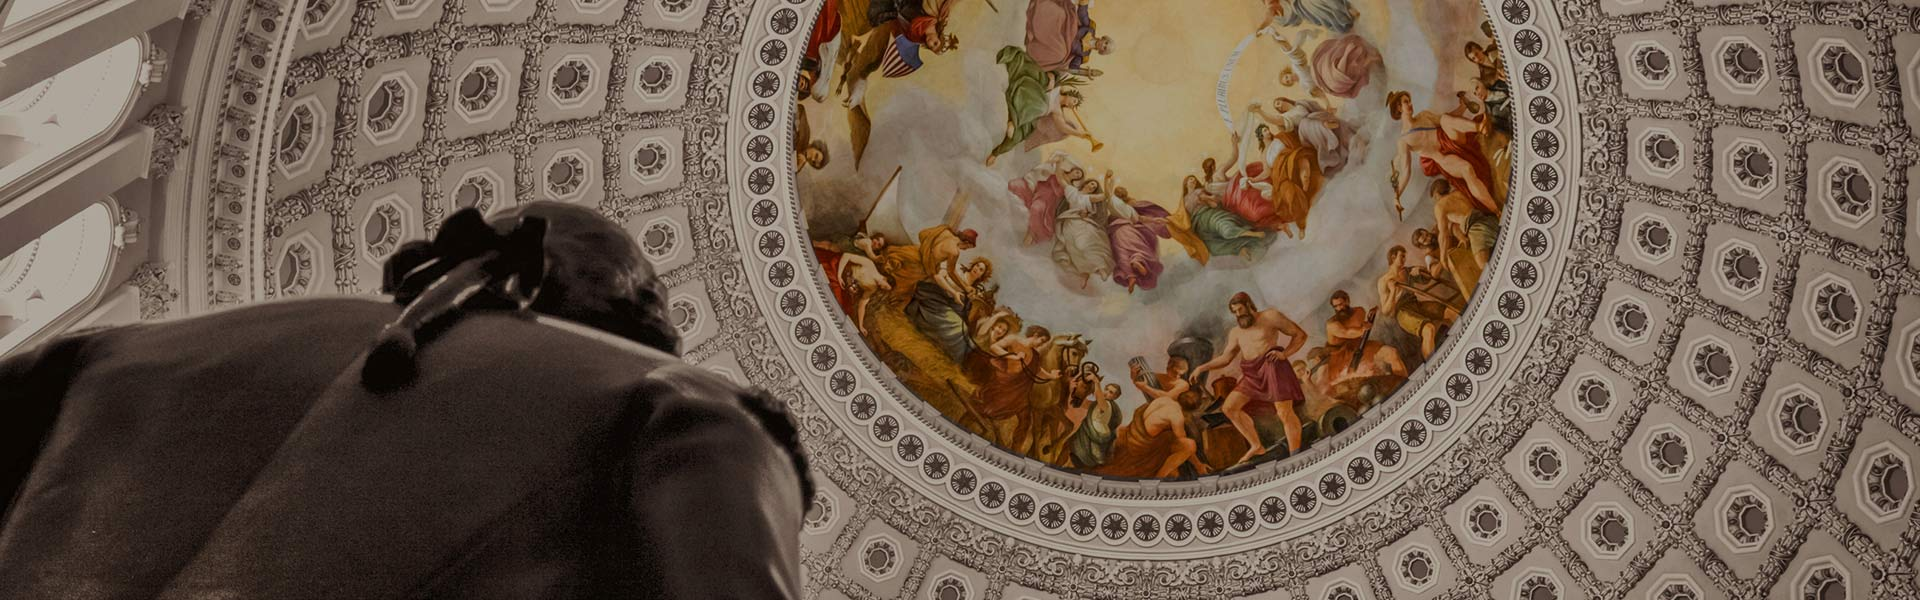 Mural on the ceiling of the Jefferson Memorial dome